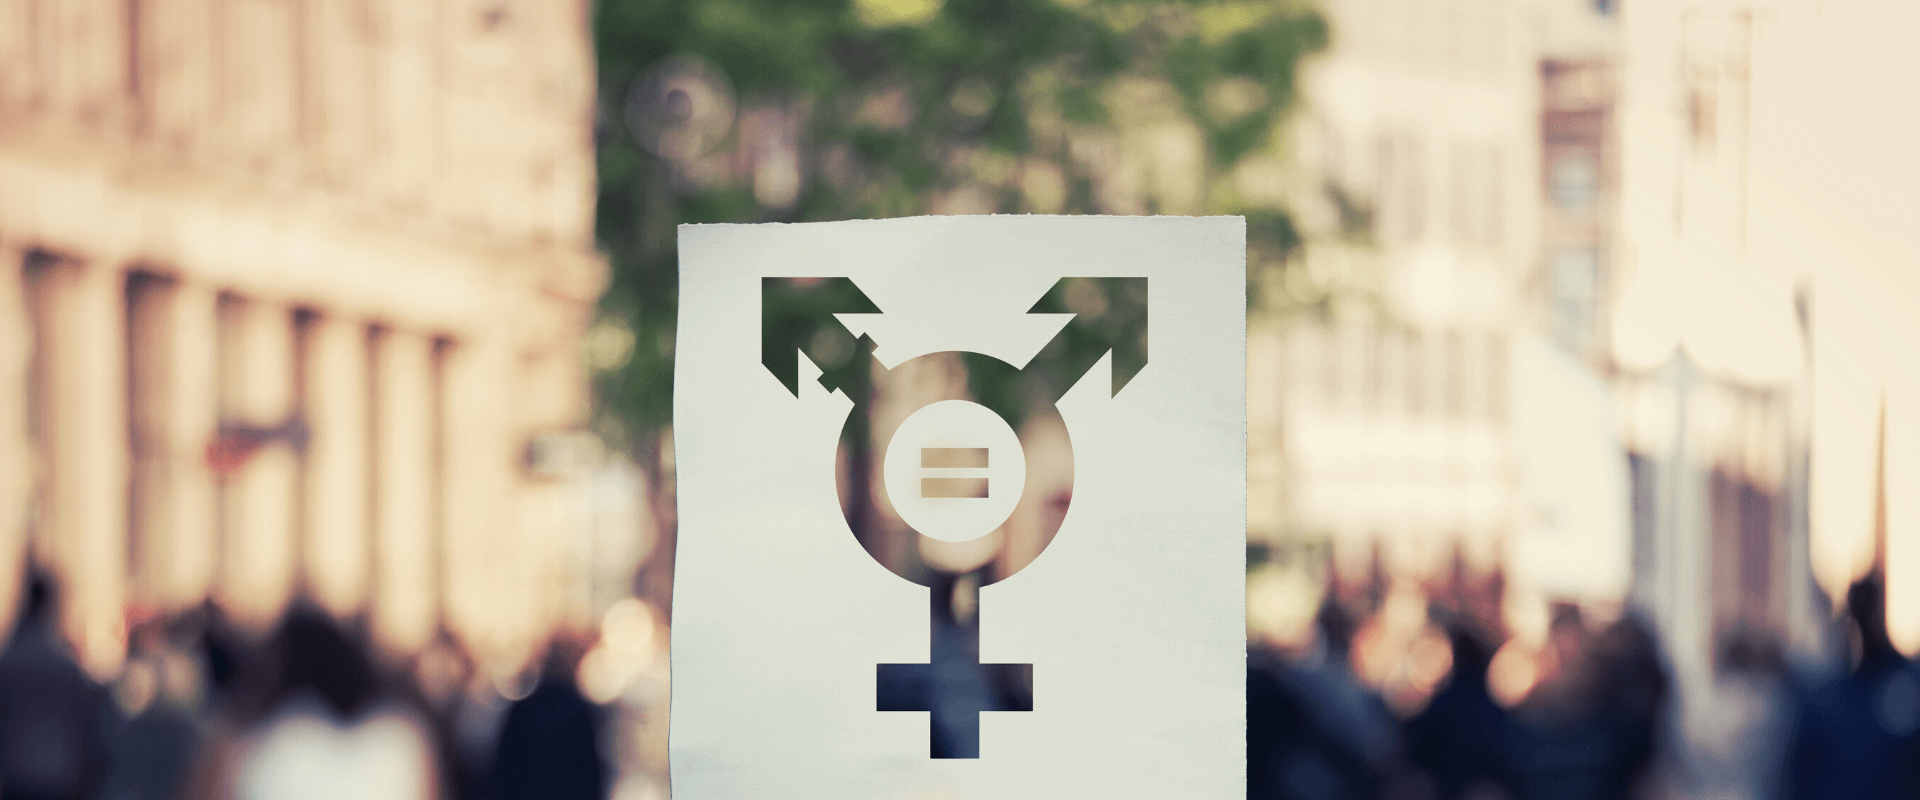 A paper sheet with the transgender symbol and equal sign inside